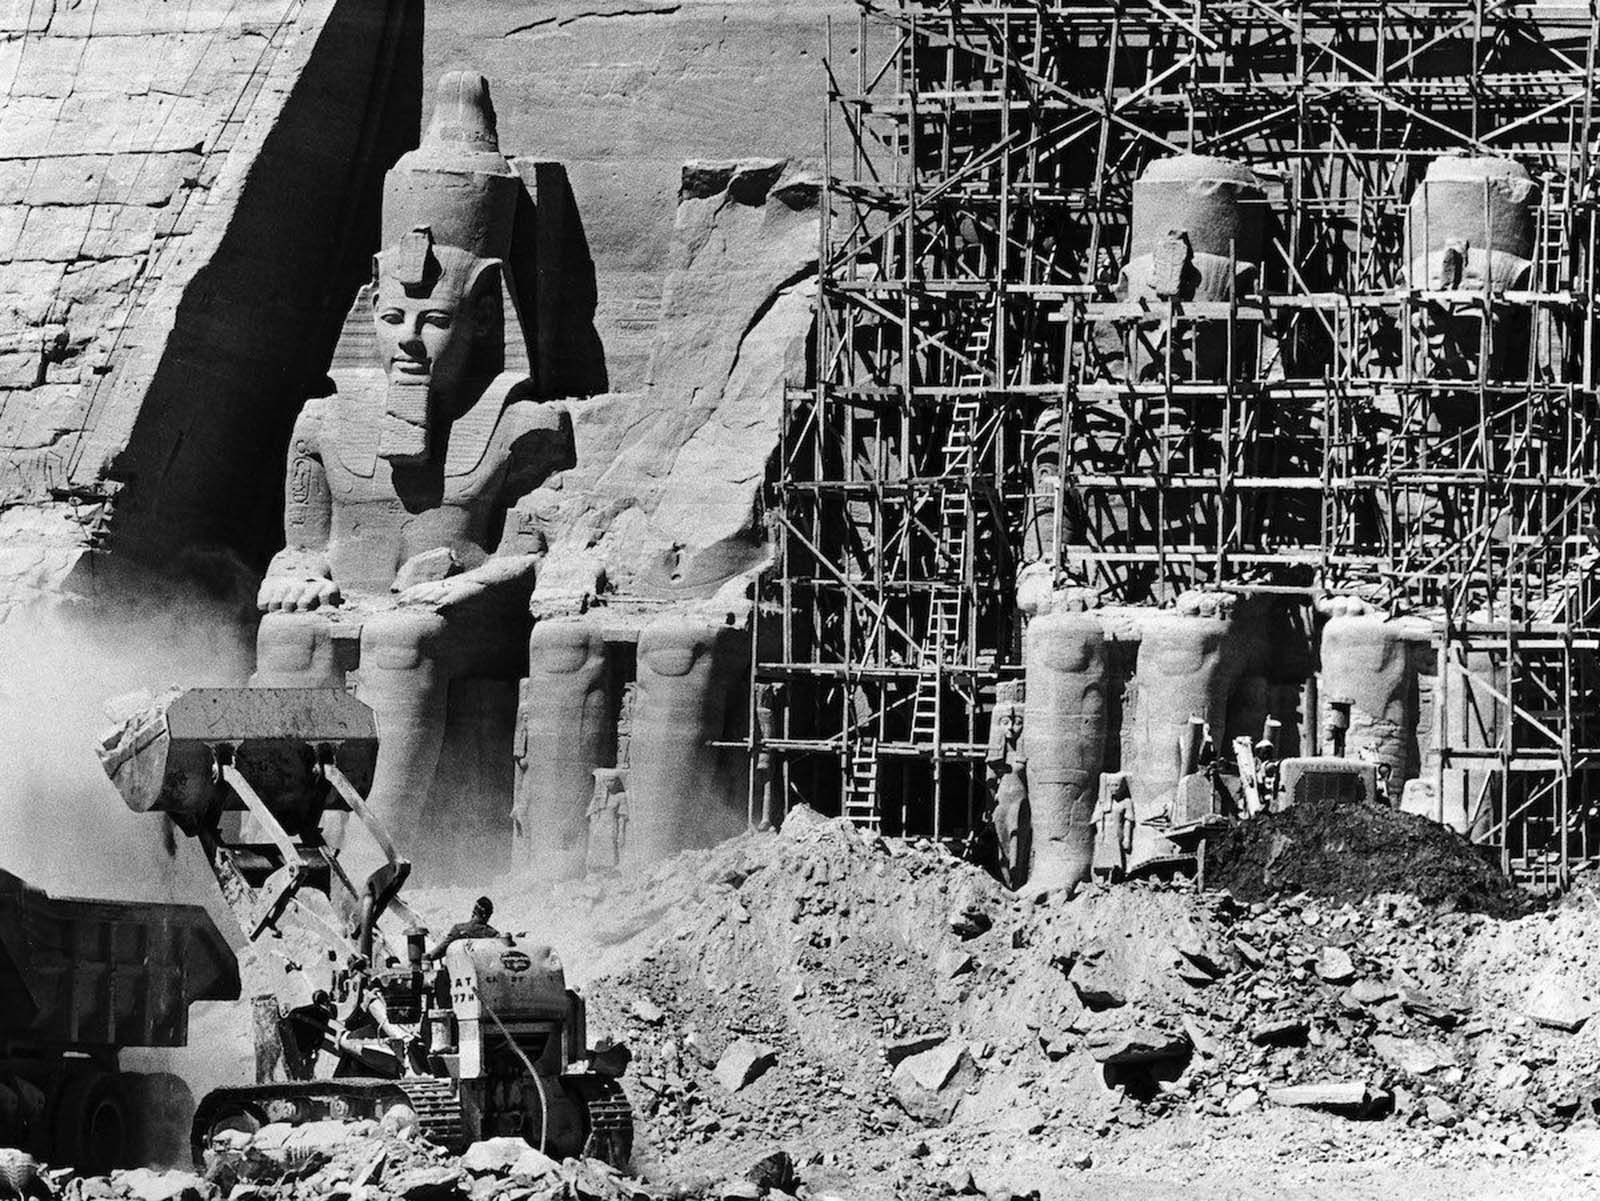 In 1964, one of the world's largest and most spectacular dismantling and reassembly projects was begun in Egypt. To rescue the ancient temples in Abu Simbel from the waters of the Nile, the temples had to be relocated.